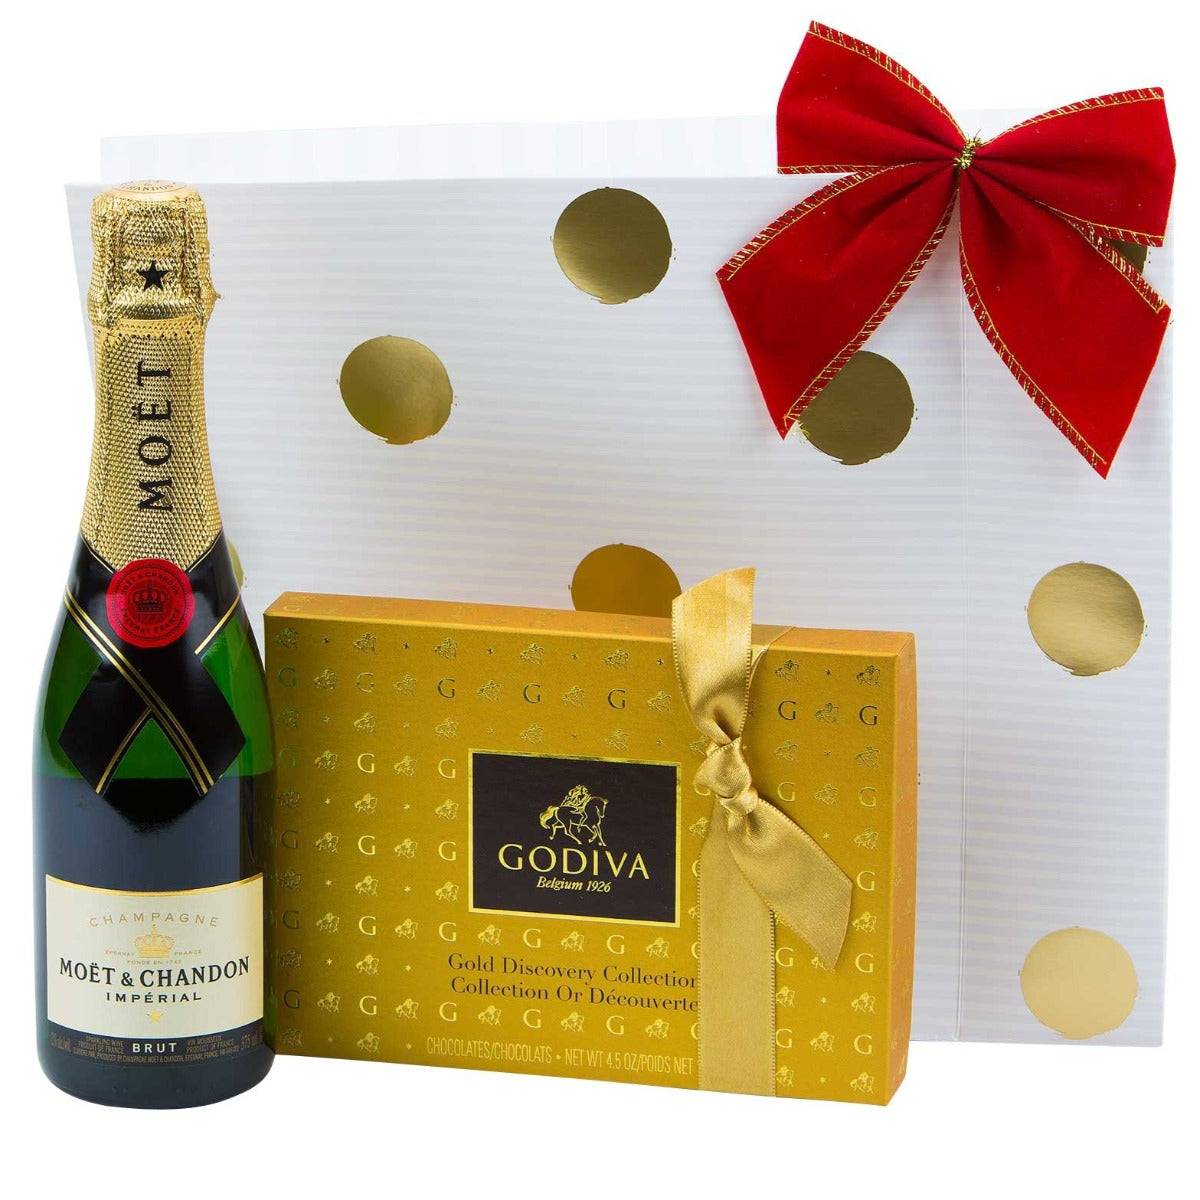 Godiva and Moet Gift Bag